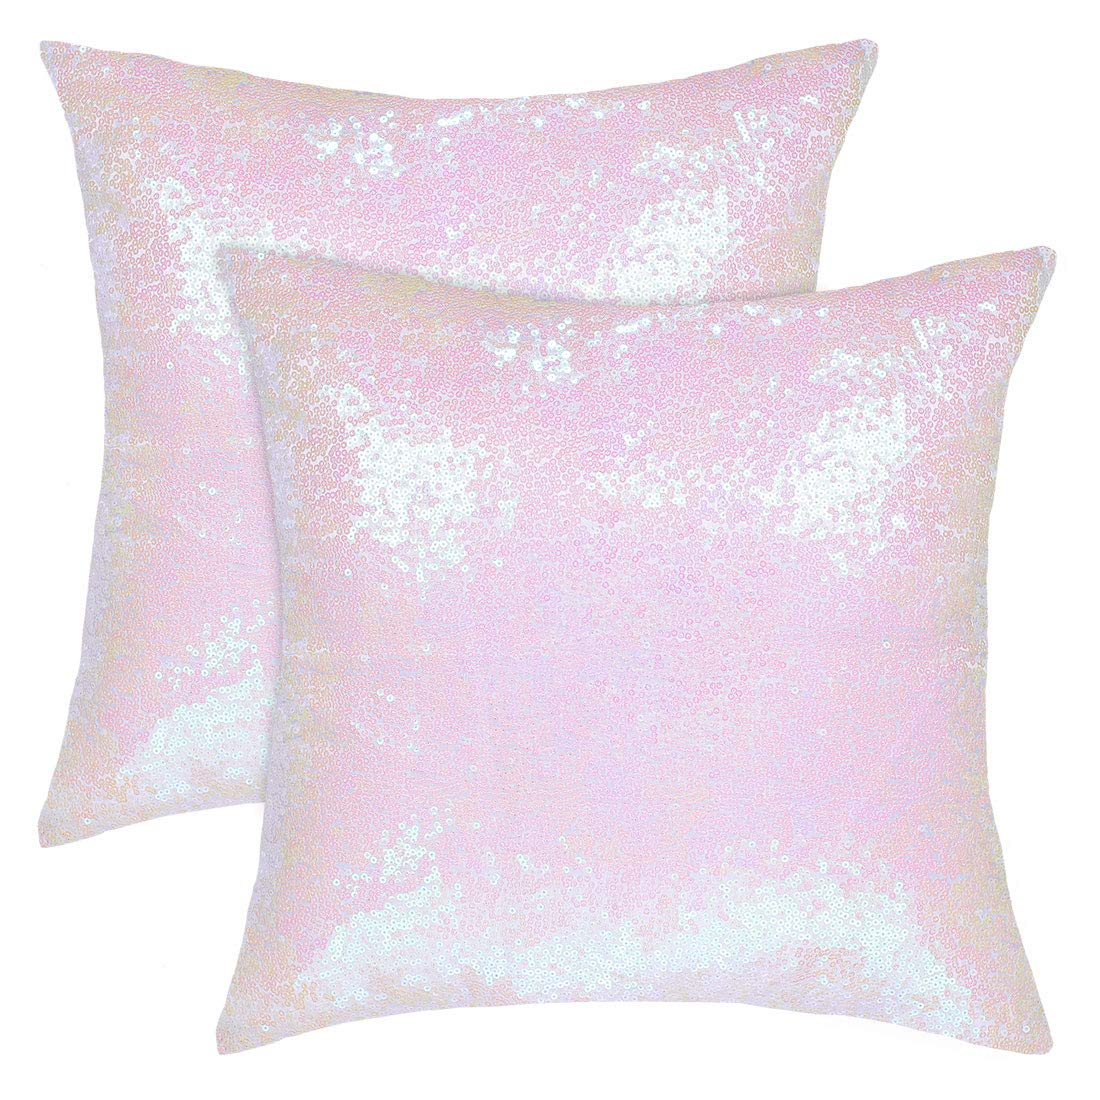 uxcell Pack of 2,Sequin Throw Pillow Covers,Shiny Sparkling Comfy Satin Cushion Covers,Decorative Pillowcases for Party/Christmas/Thanksgiving/New Year,16 x 16 Inch, Starry Pink